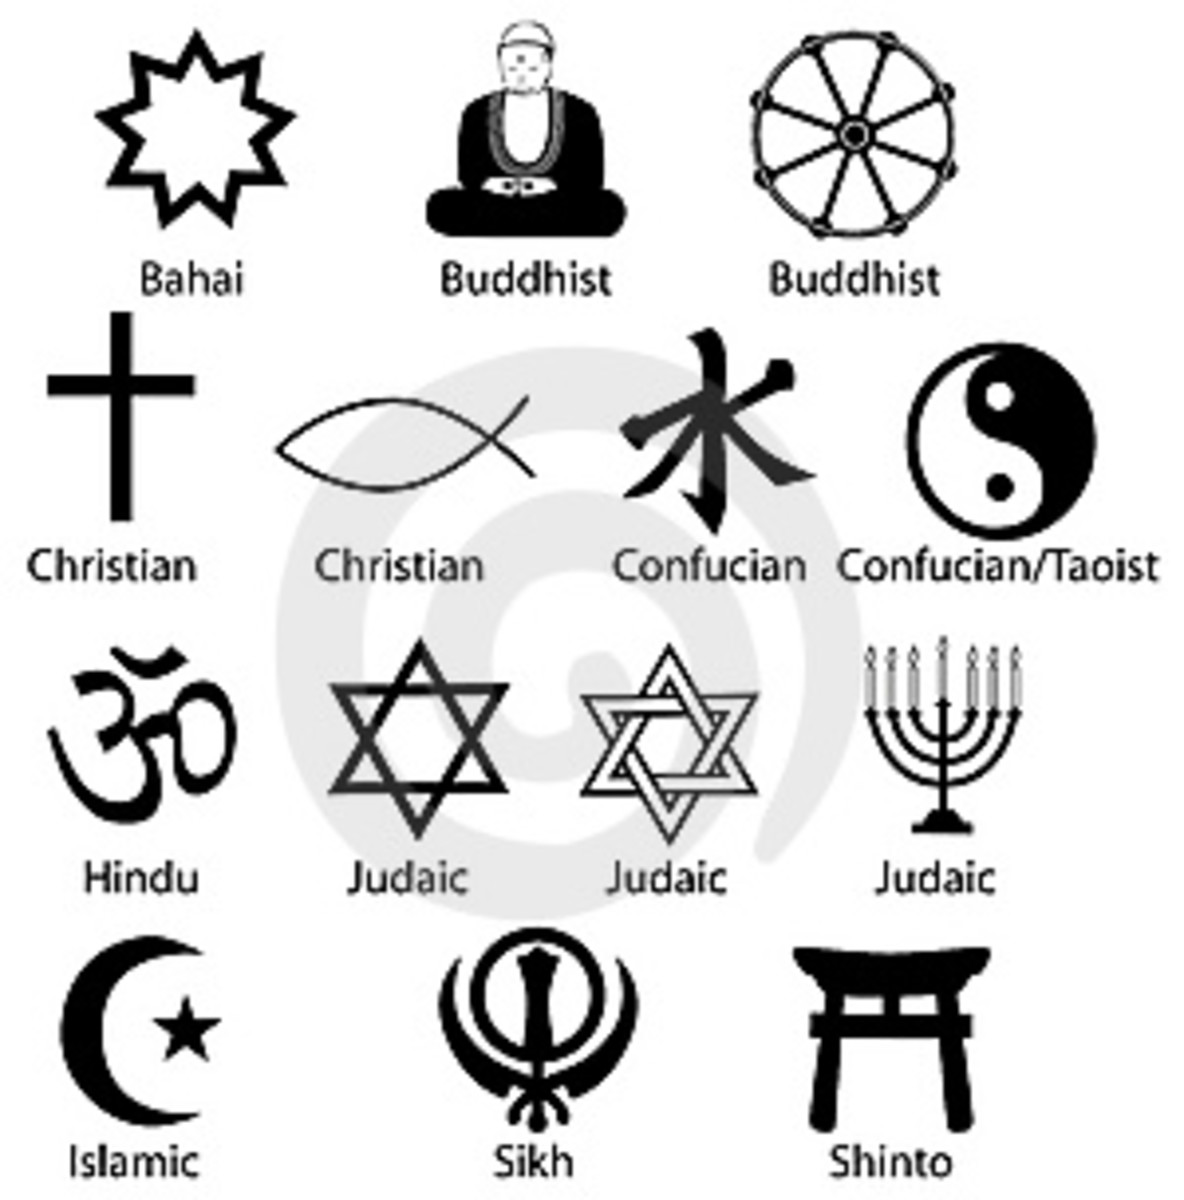 There are many competing religions. but there is a string of common belief among them all, once one studies comparative religion.